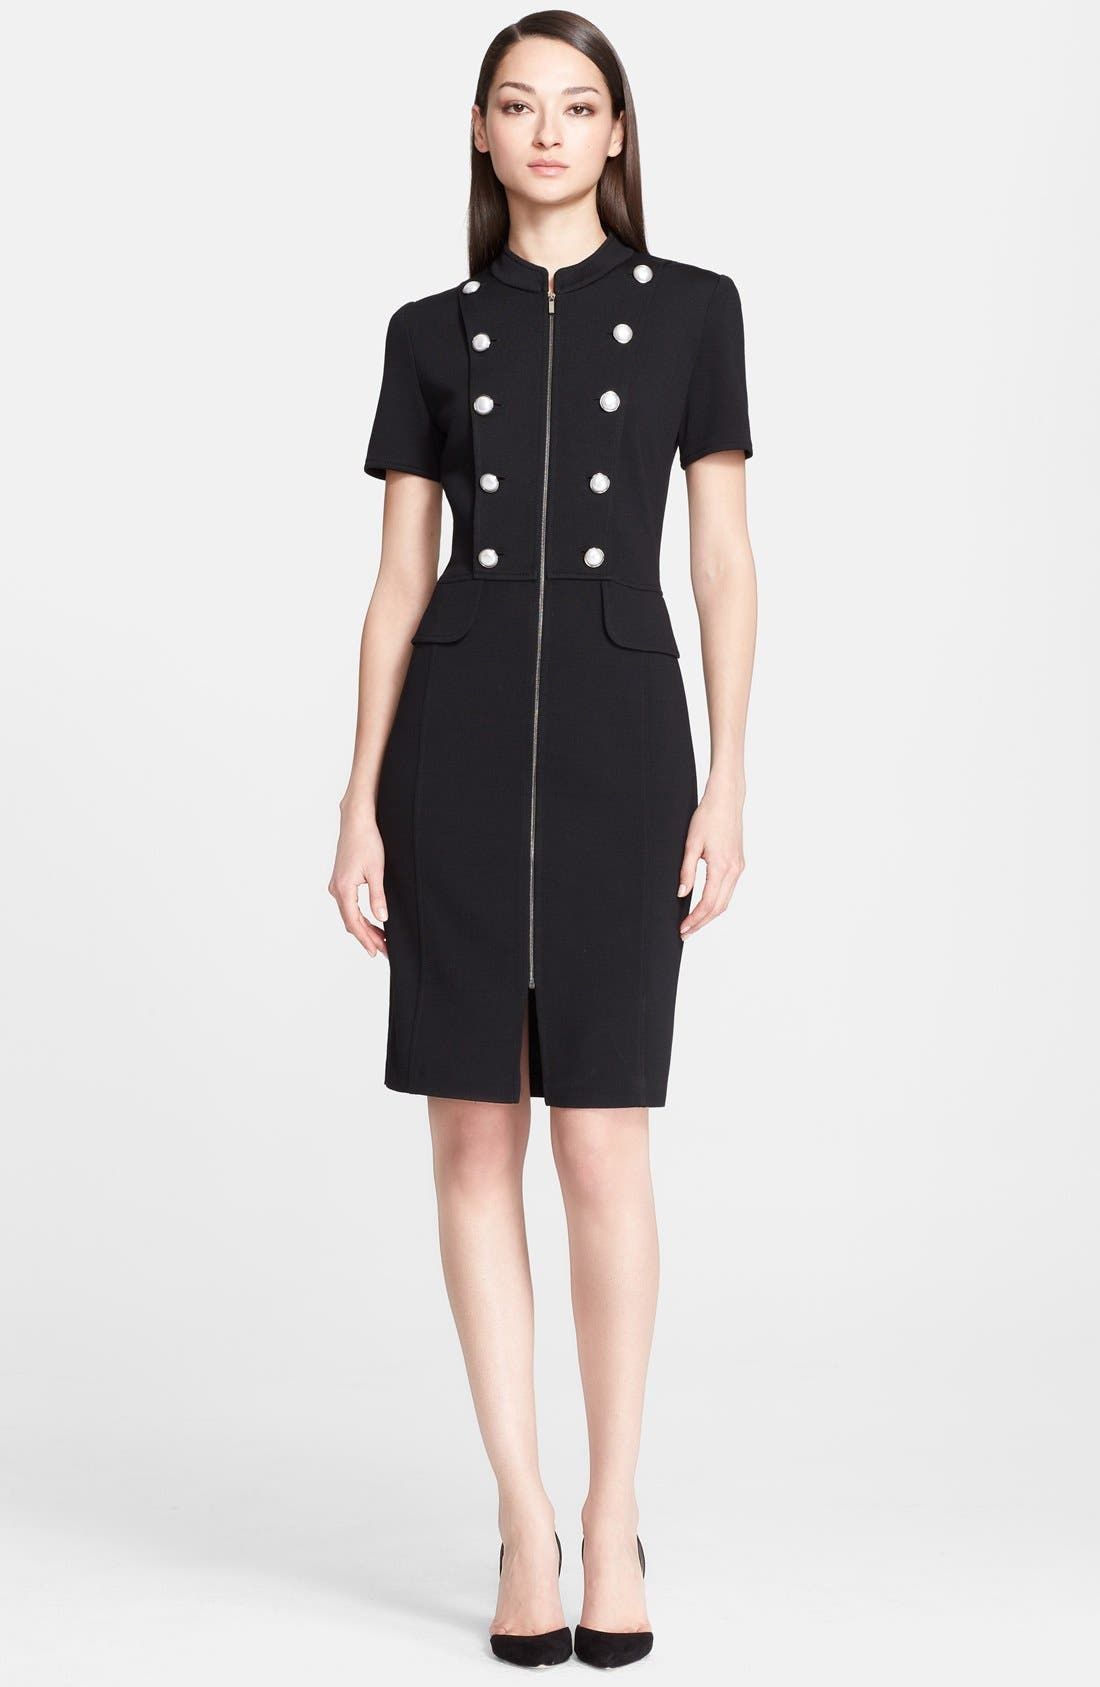 Main Image - St. John Collection Milano Knit Military Dress